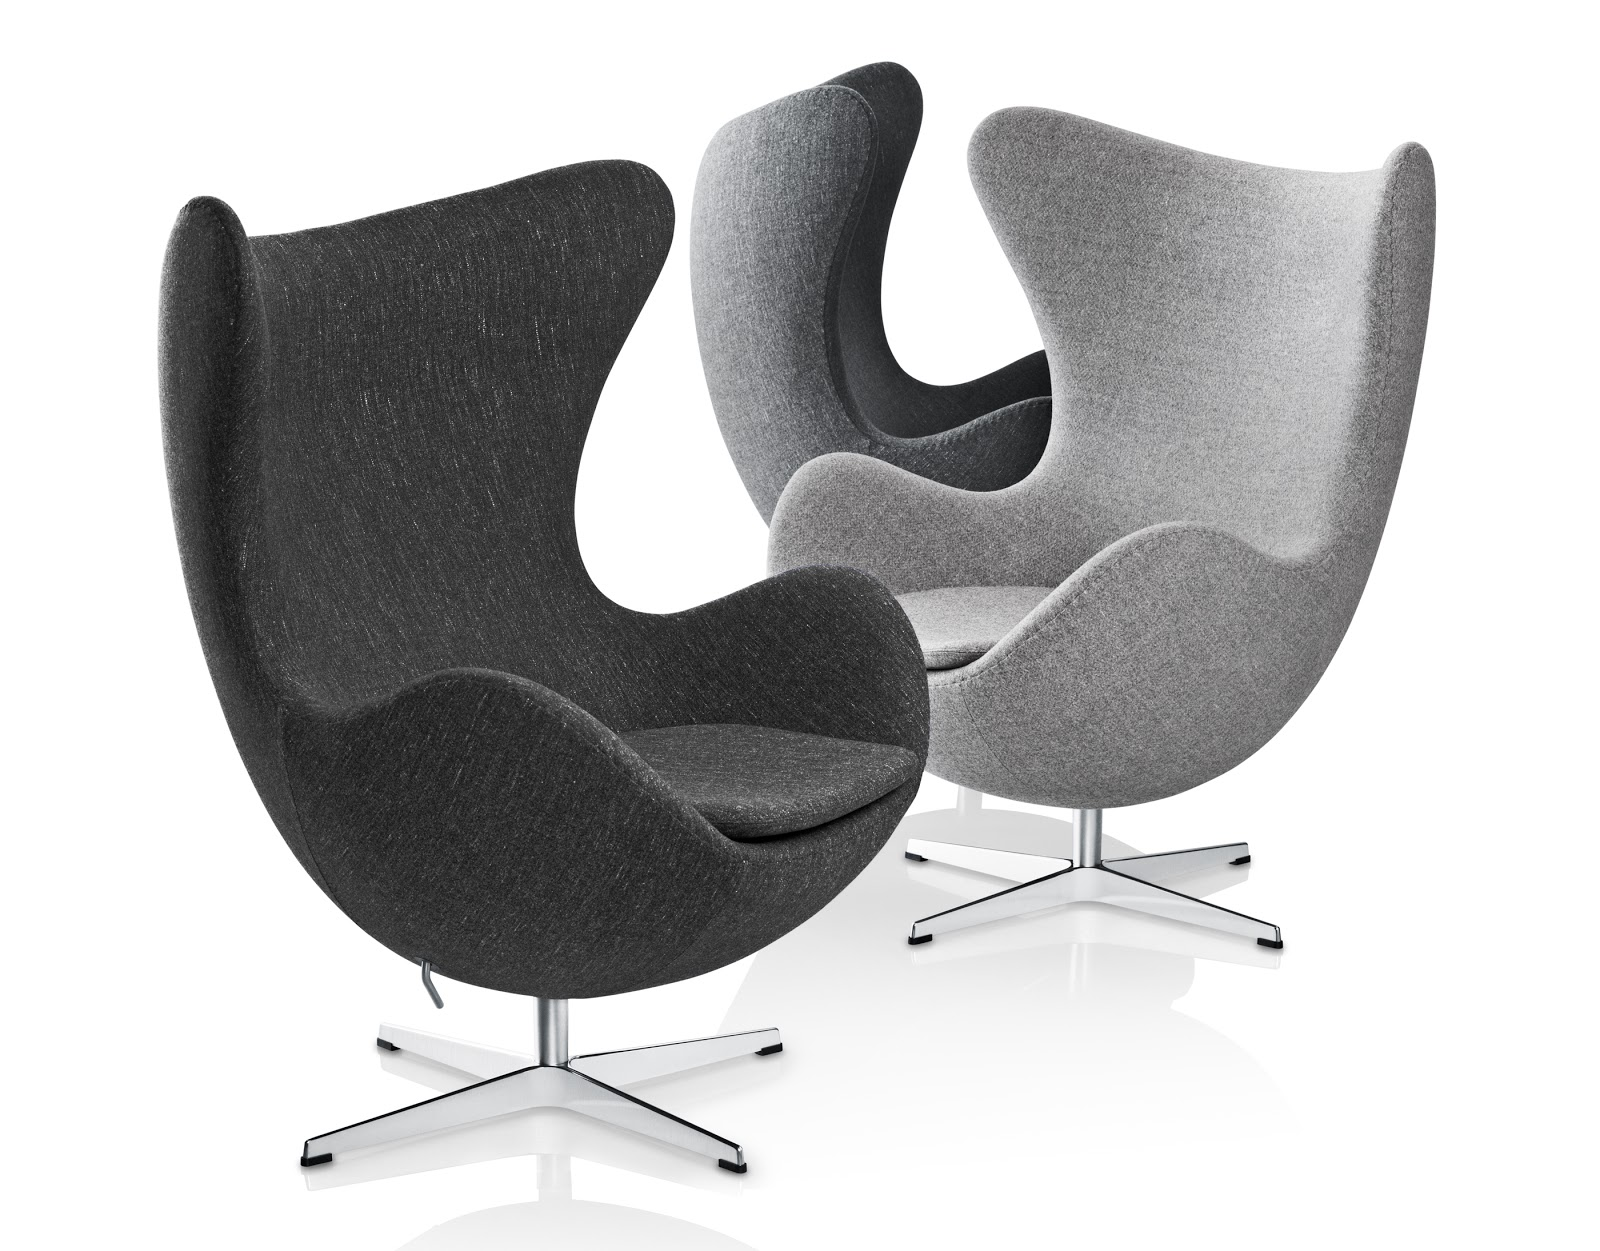 jacobsen egg chairs saville row suite upholstery all colors. Black Bedroom Furniture Sets. Home Design Ideas